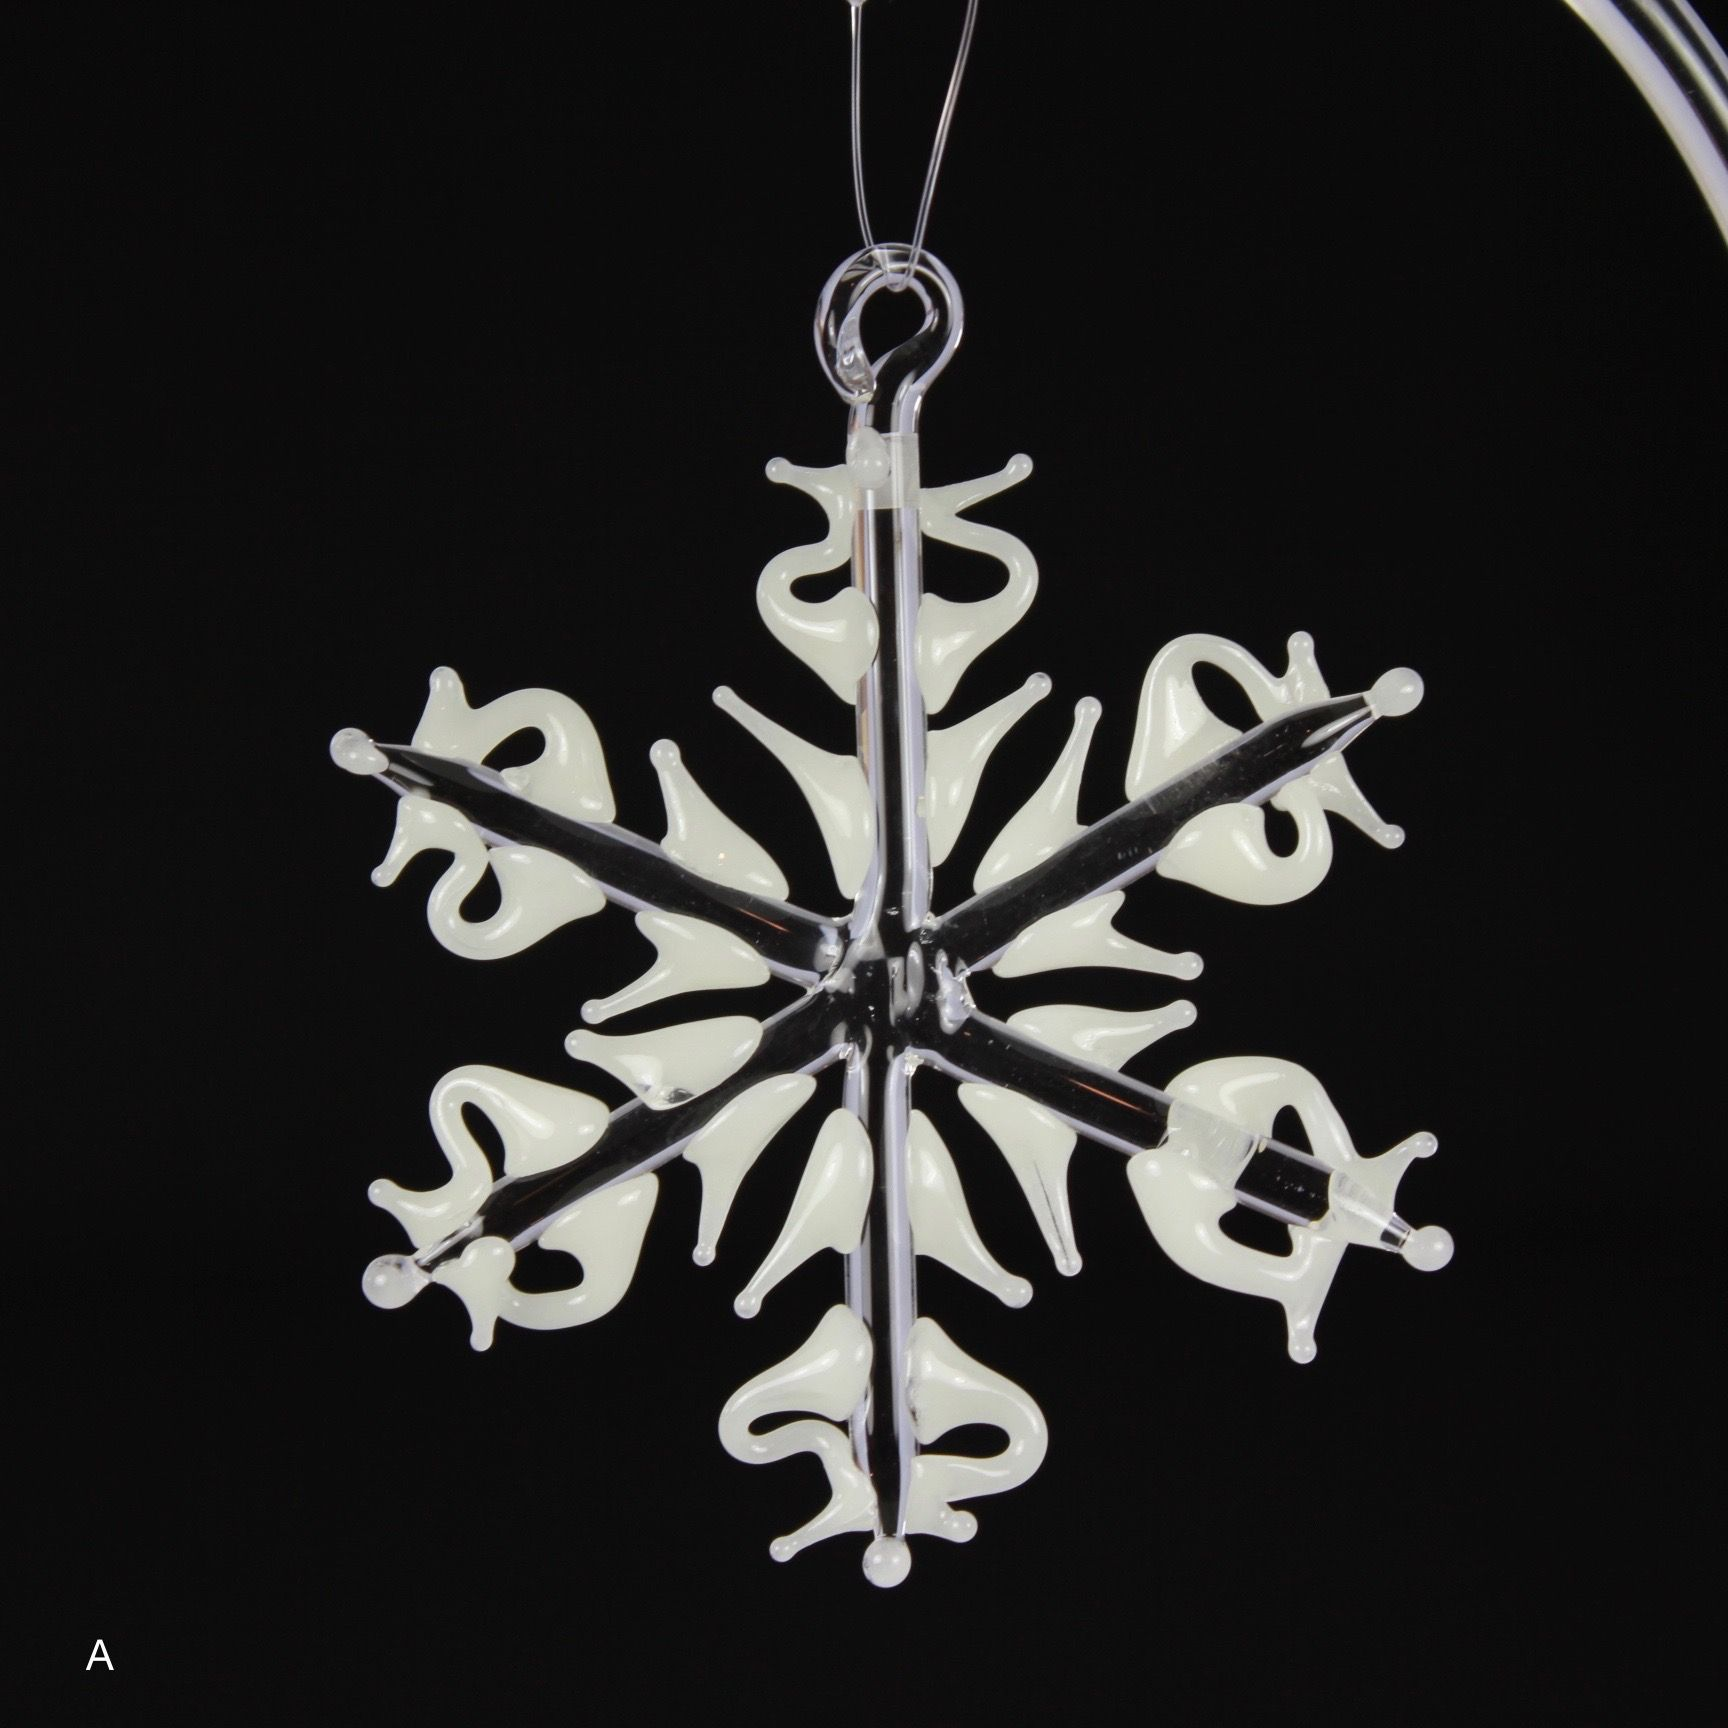 Glow-in-the-Dark Snowflake Ornament